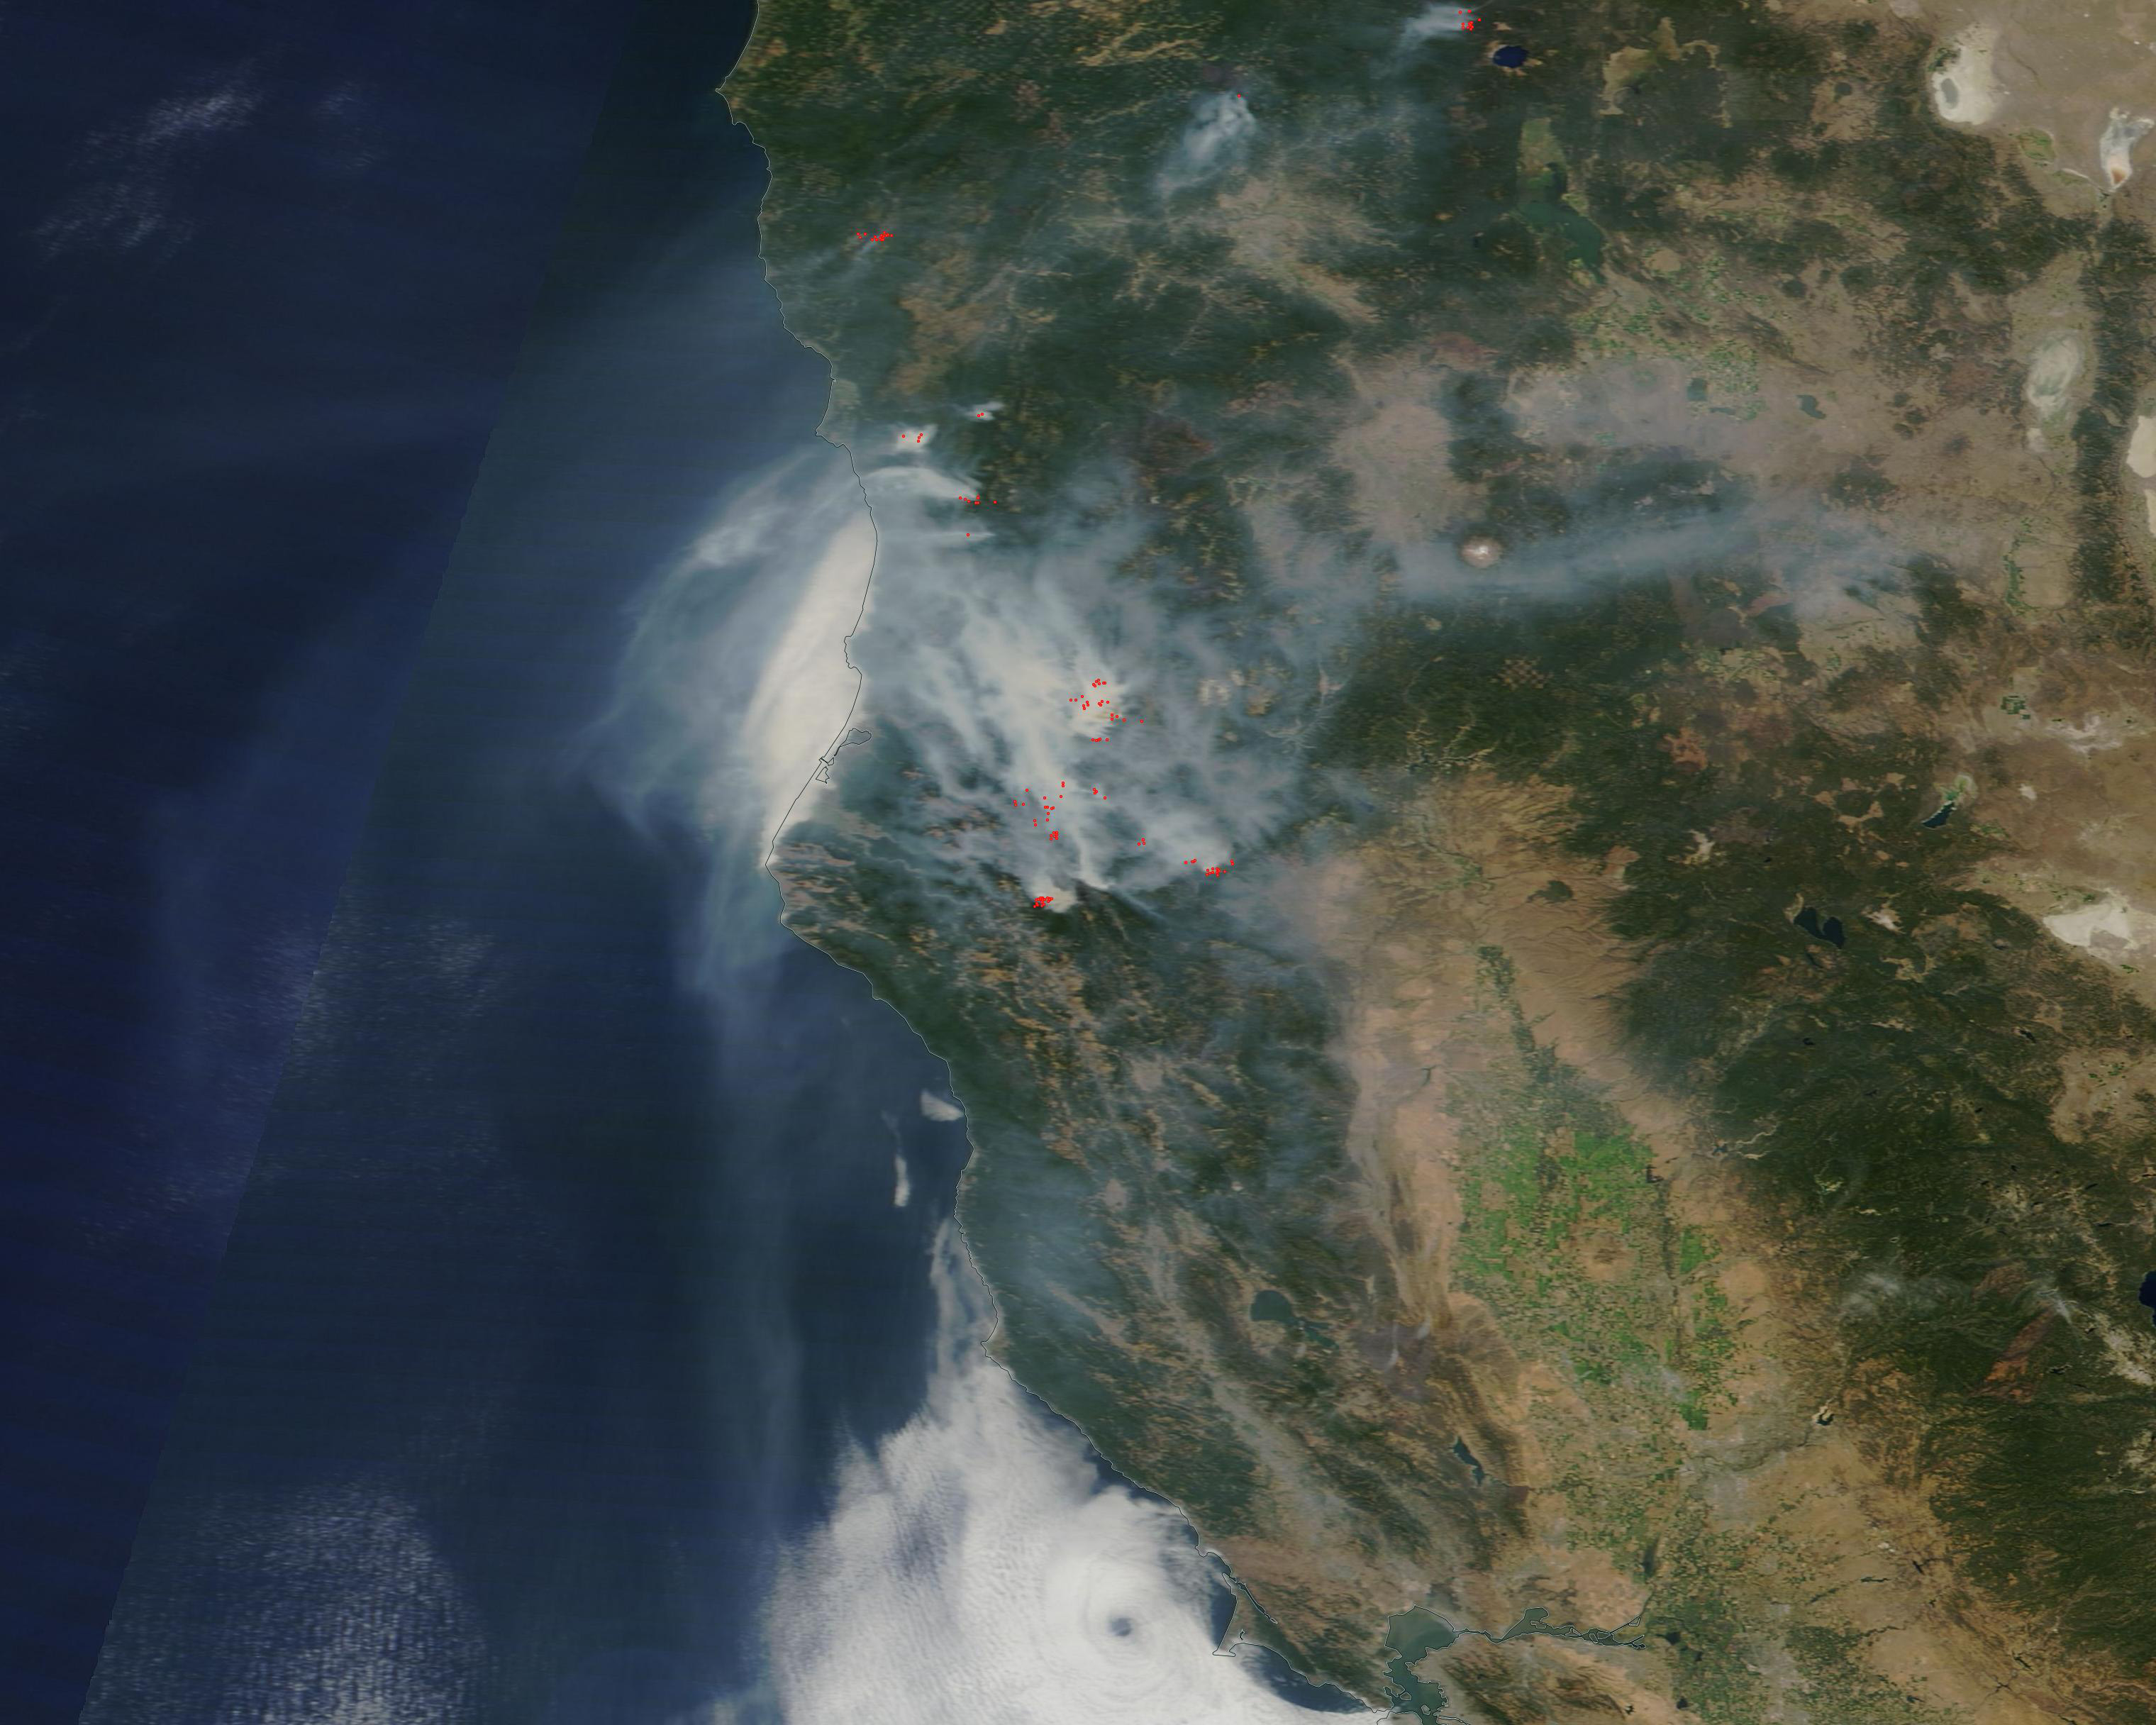 fires in california right now map with Blanket Of Smoke From Northern California Fires on The New American Landscape Jus additionally La Northern California Fires Live 1507676591 Htmlstory together with Watch likewise California Wildfire Nearly Doubles Size Evacuations Expanded N615576 together with Photos Un Feu De Foret Ravage Plus De 8000 Hectares En Californie 66860.